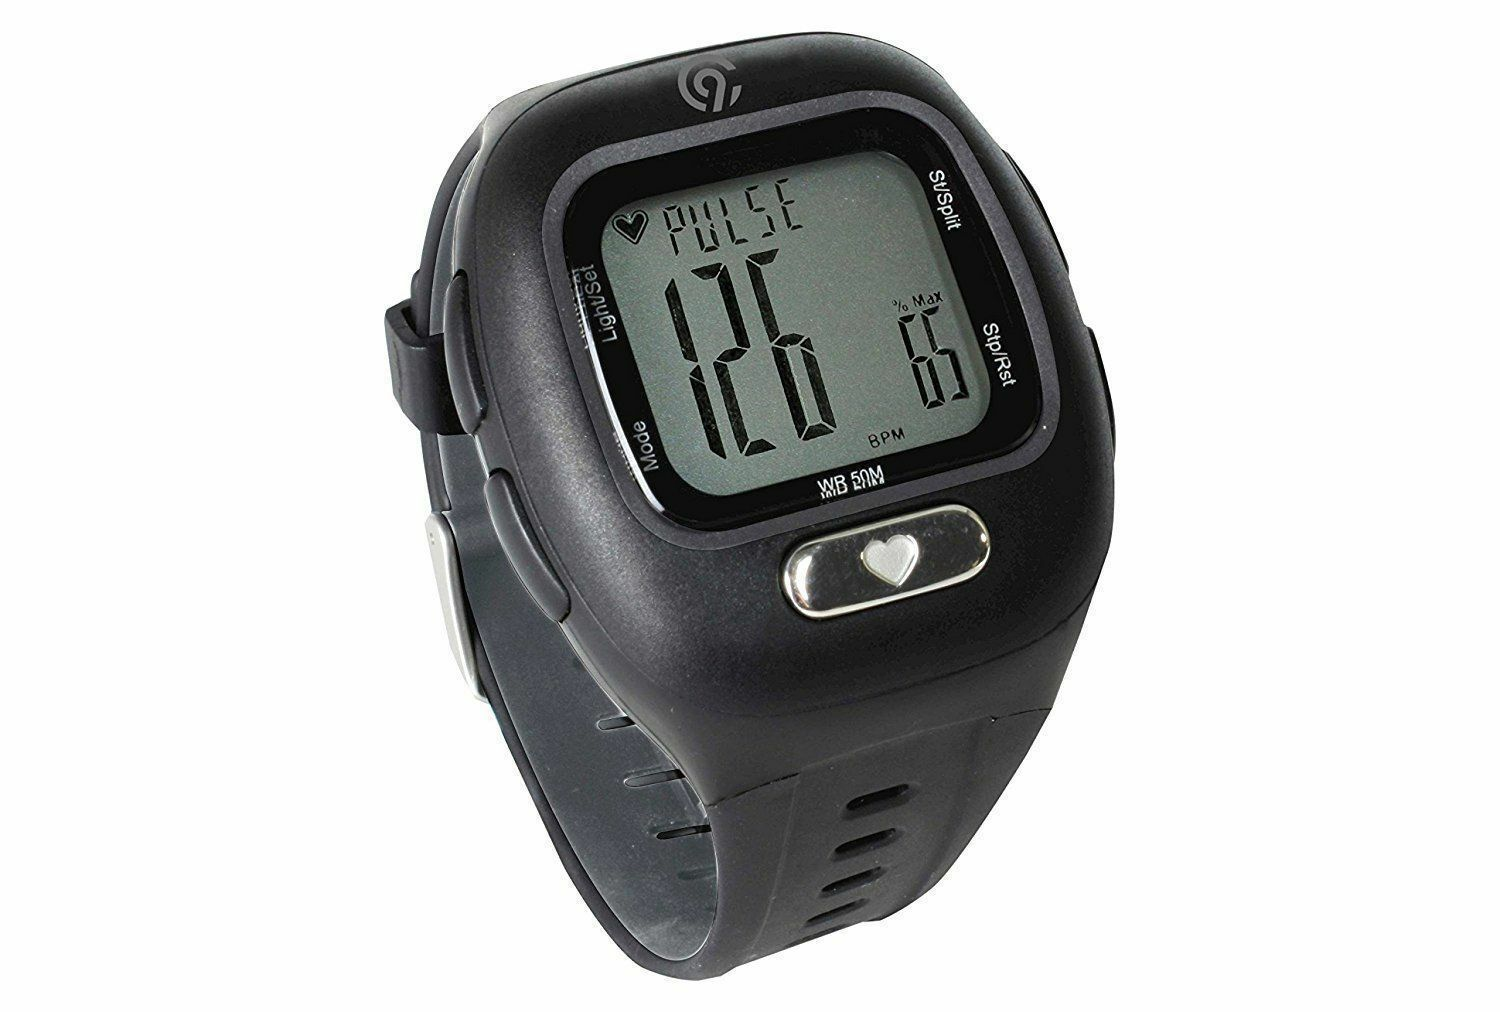 BRAND NEW C9 Champion PACE Heart Rate Monitor Wrist Band Alarm Watch